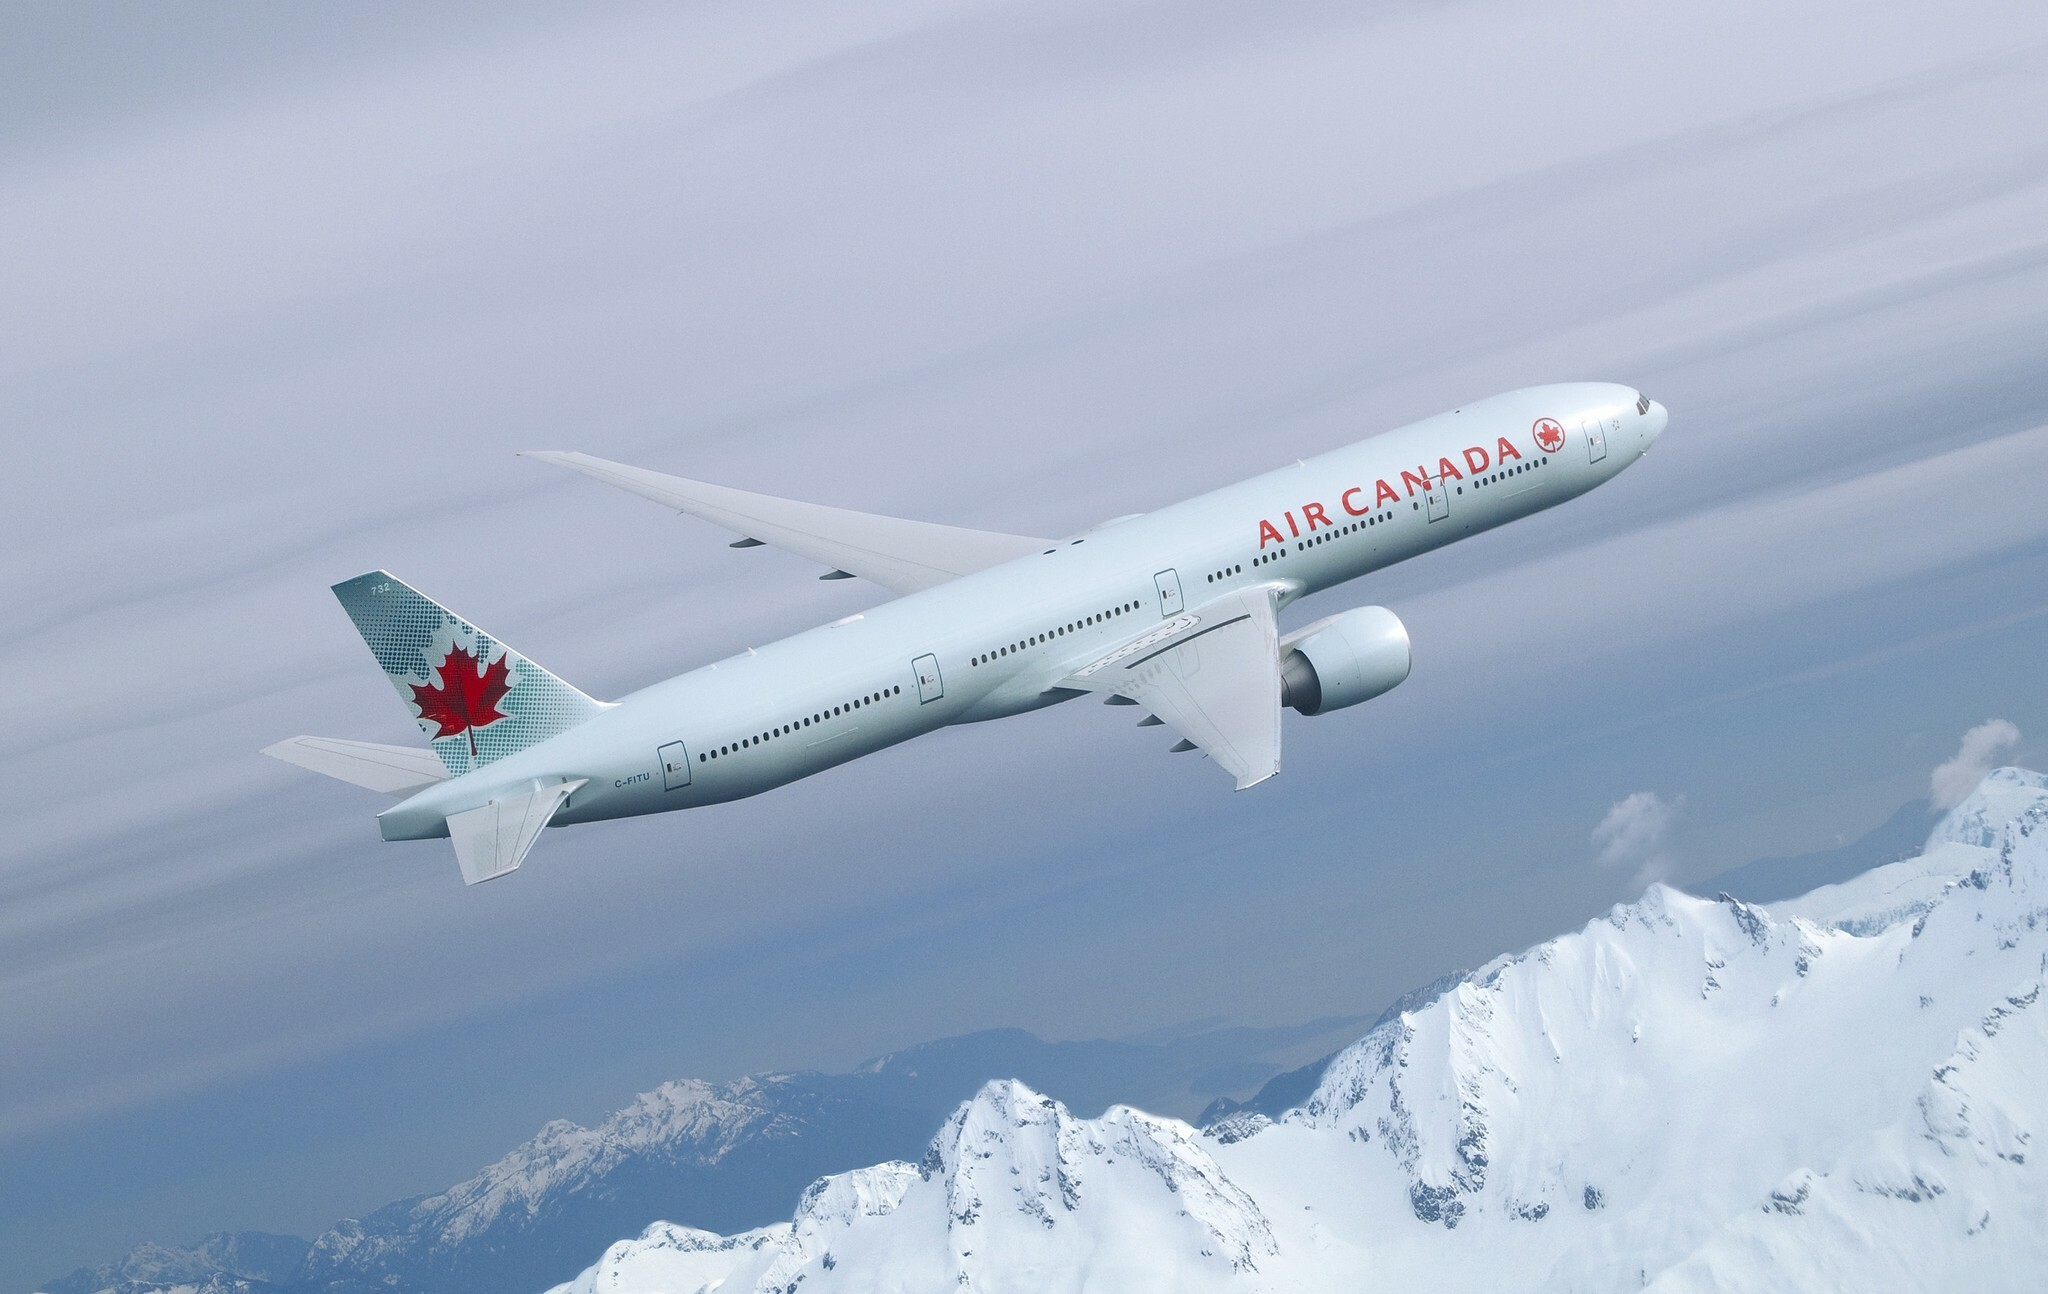 Air Canada to launch in-flight Wi-Fi for international flights this fall